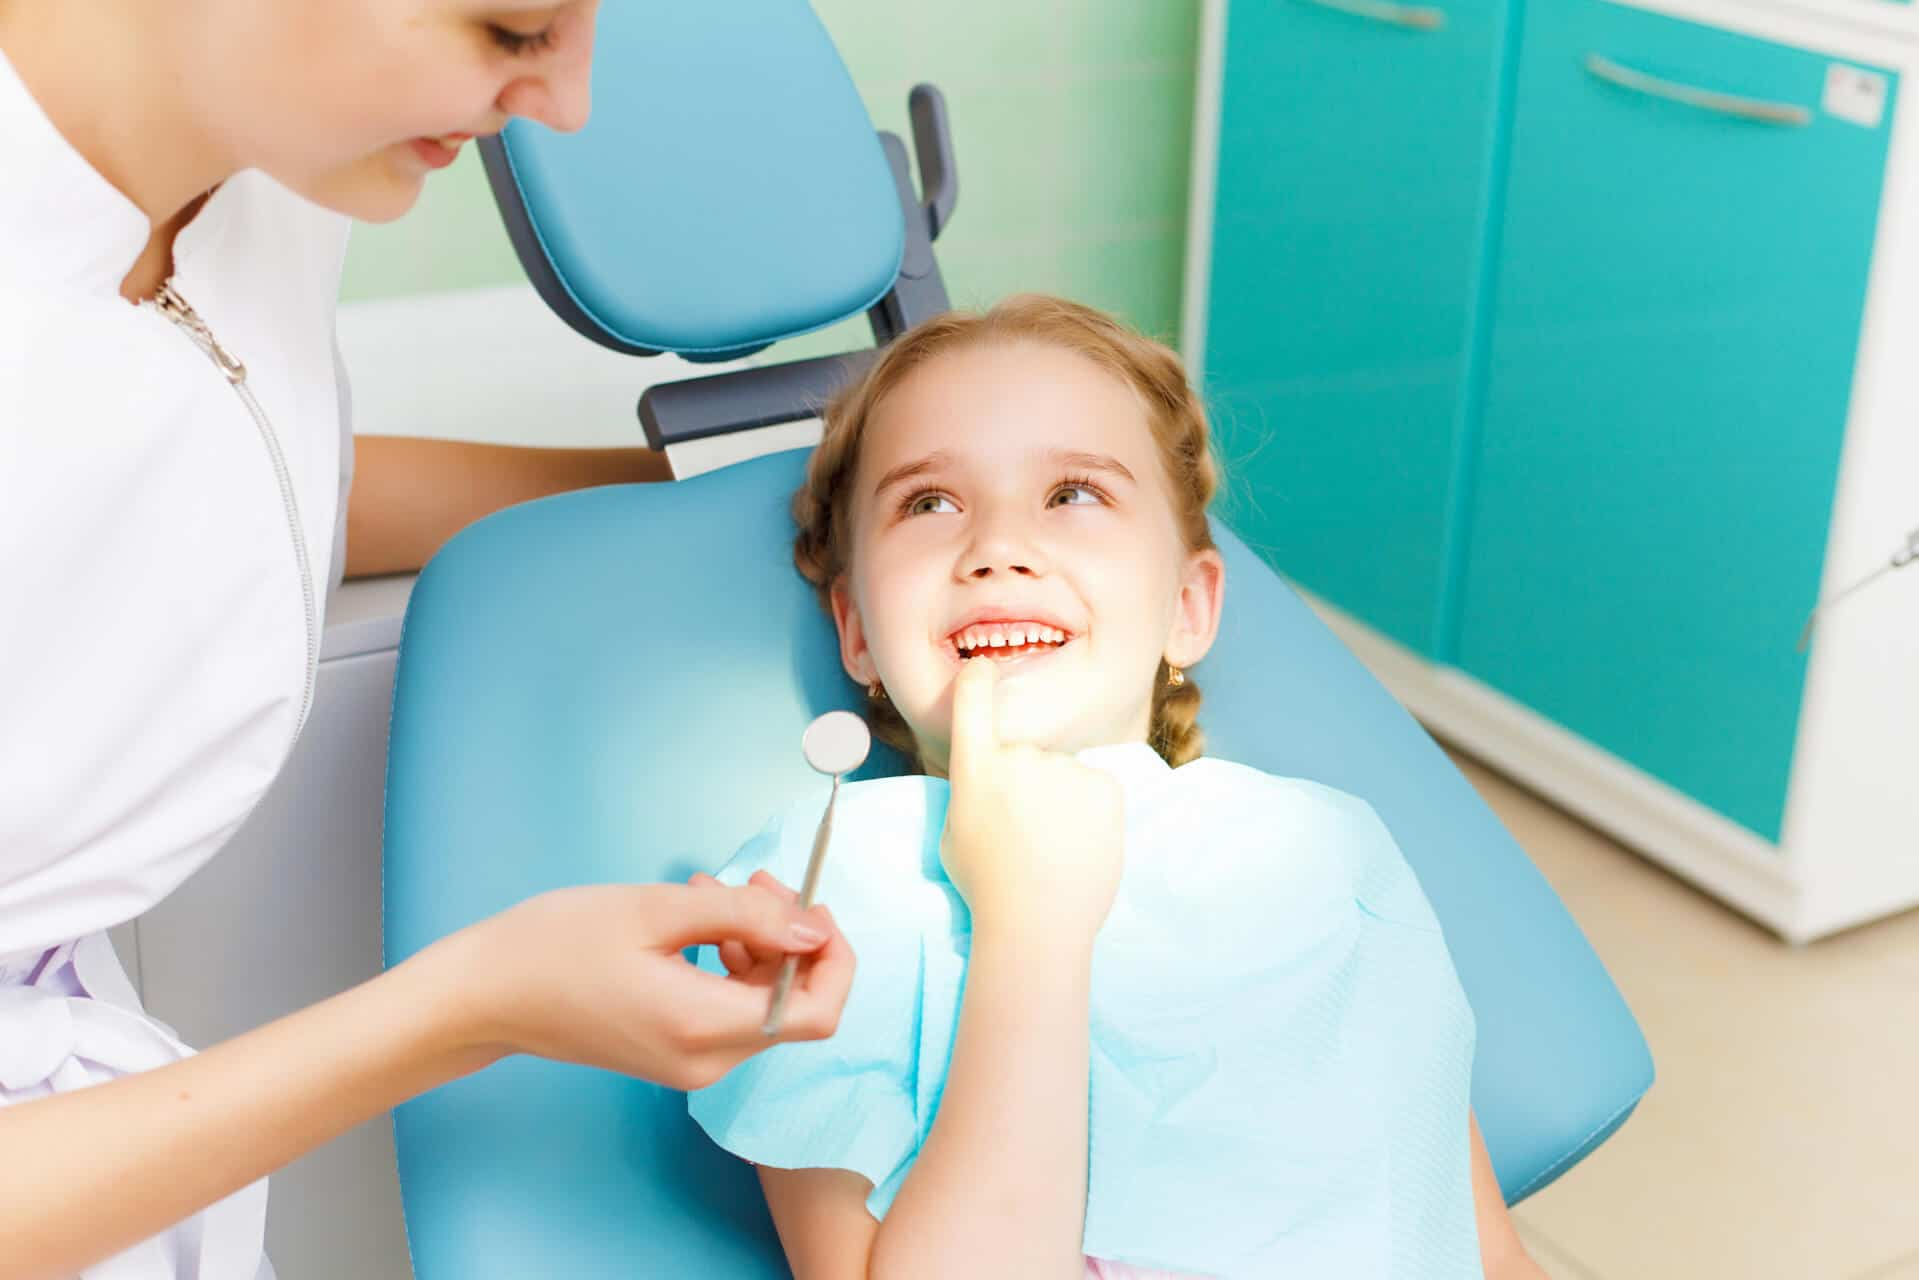 Where can I find the best childrens dentist in Boca Raton?